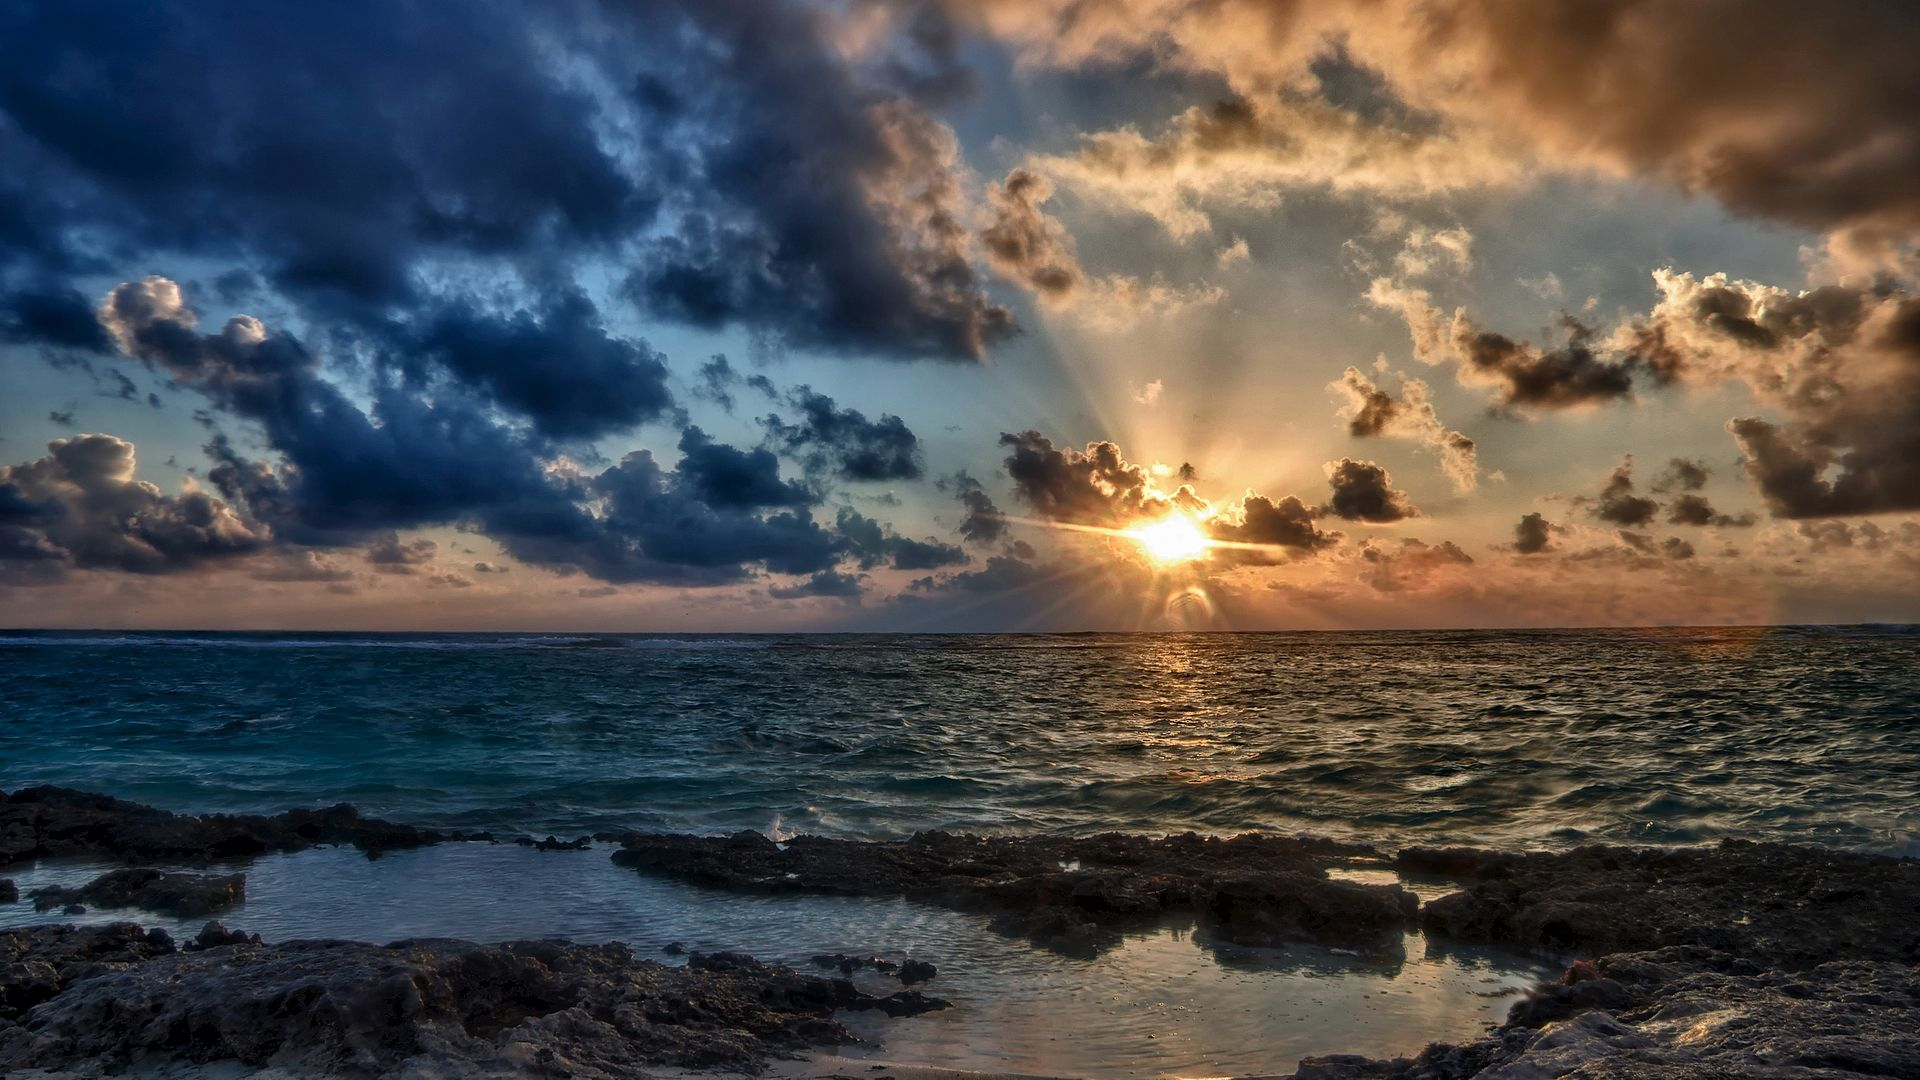 Ocean Sunset download free wallpapers for pc in hd